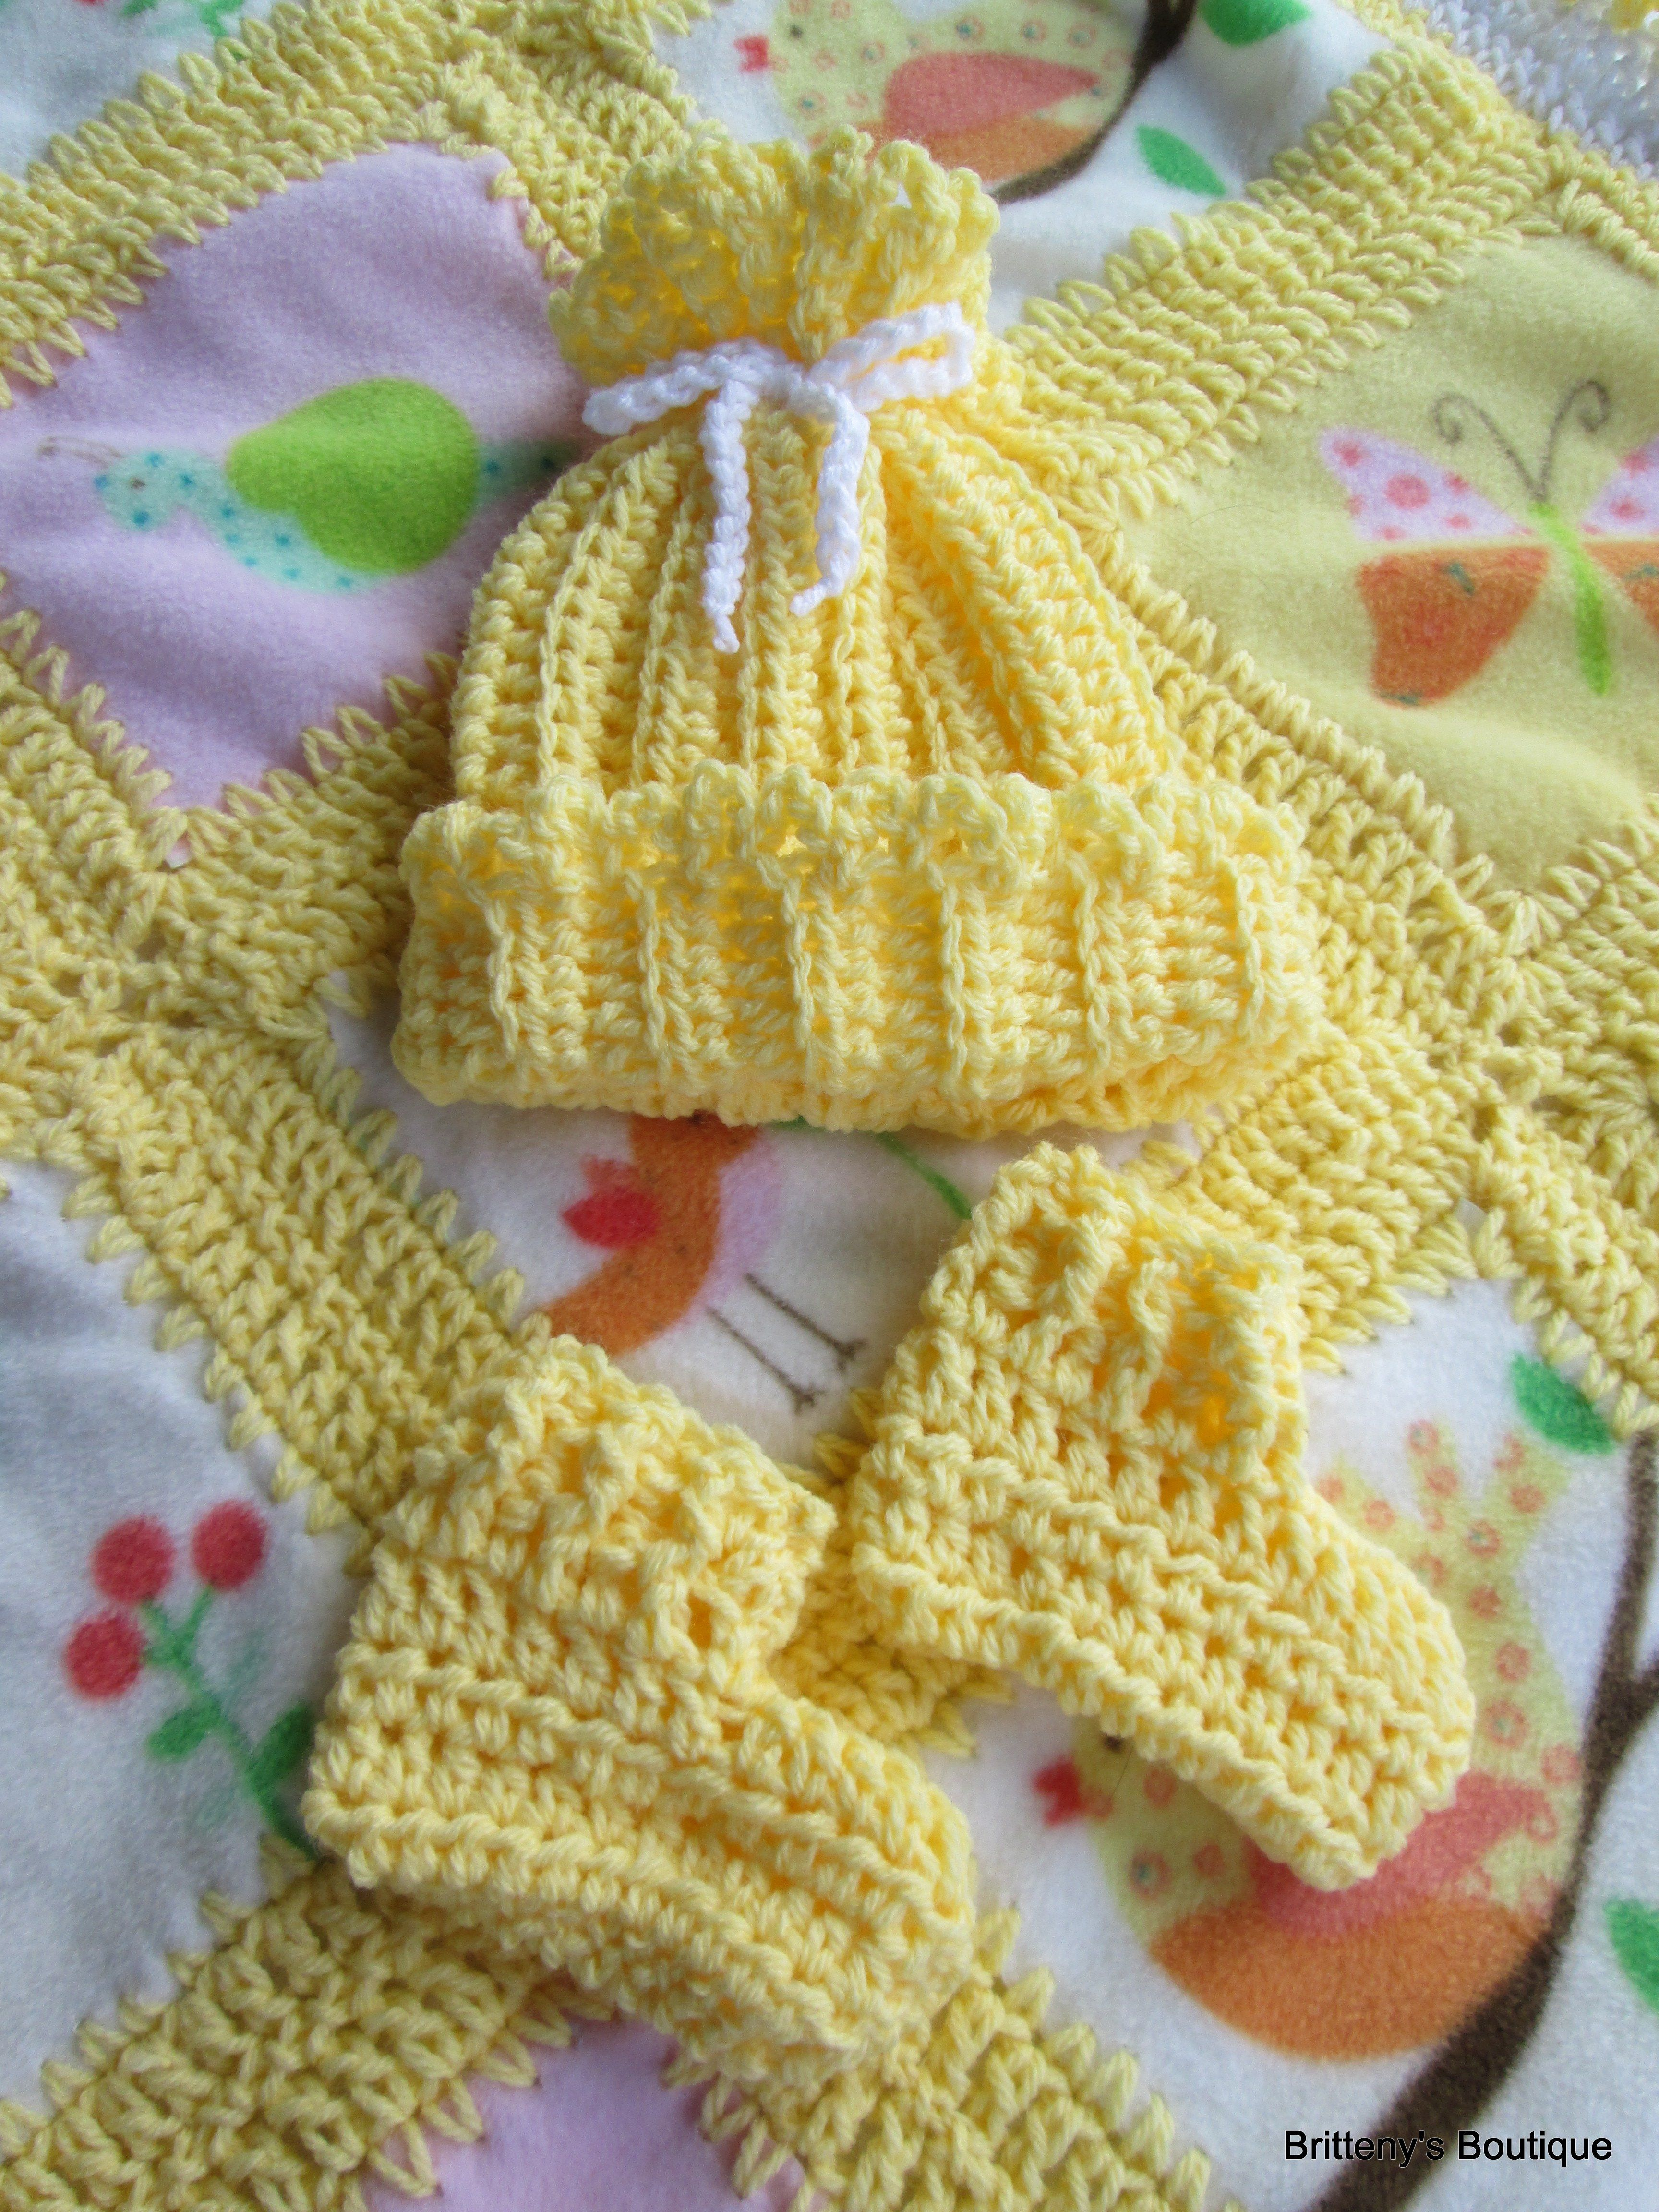 This is a crochet and fleece blanket hat and booties layette set